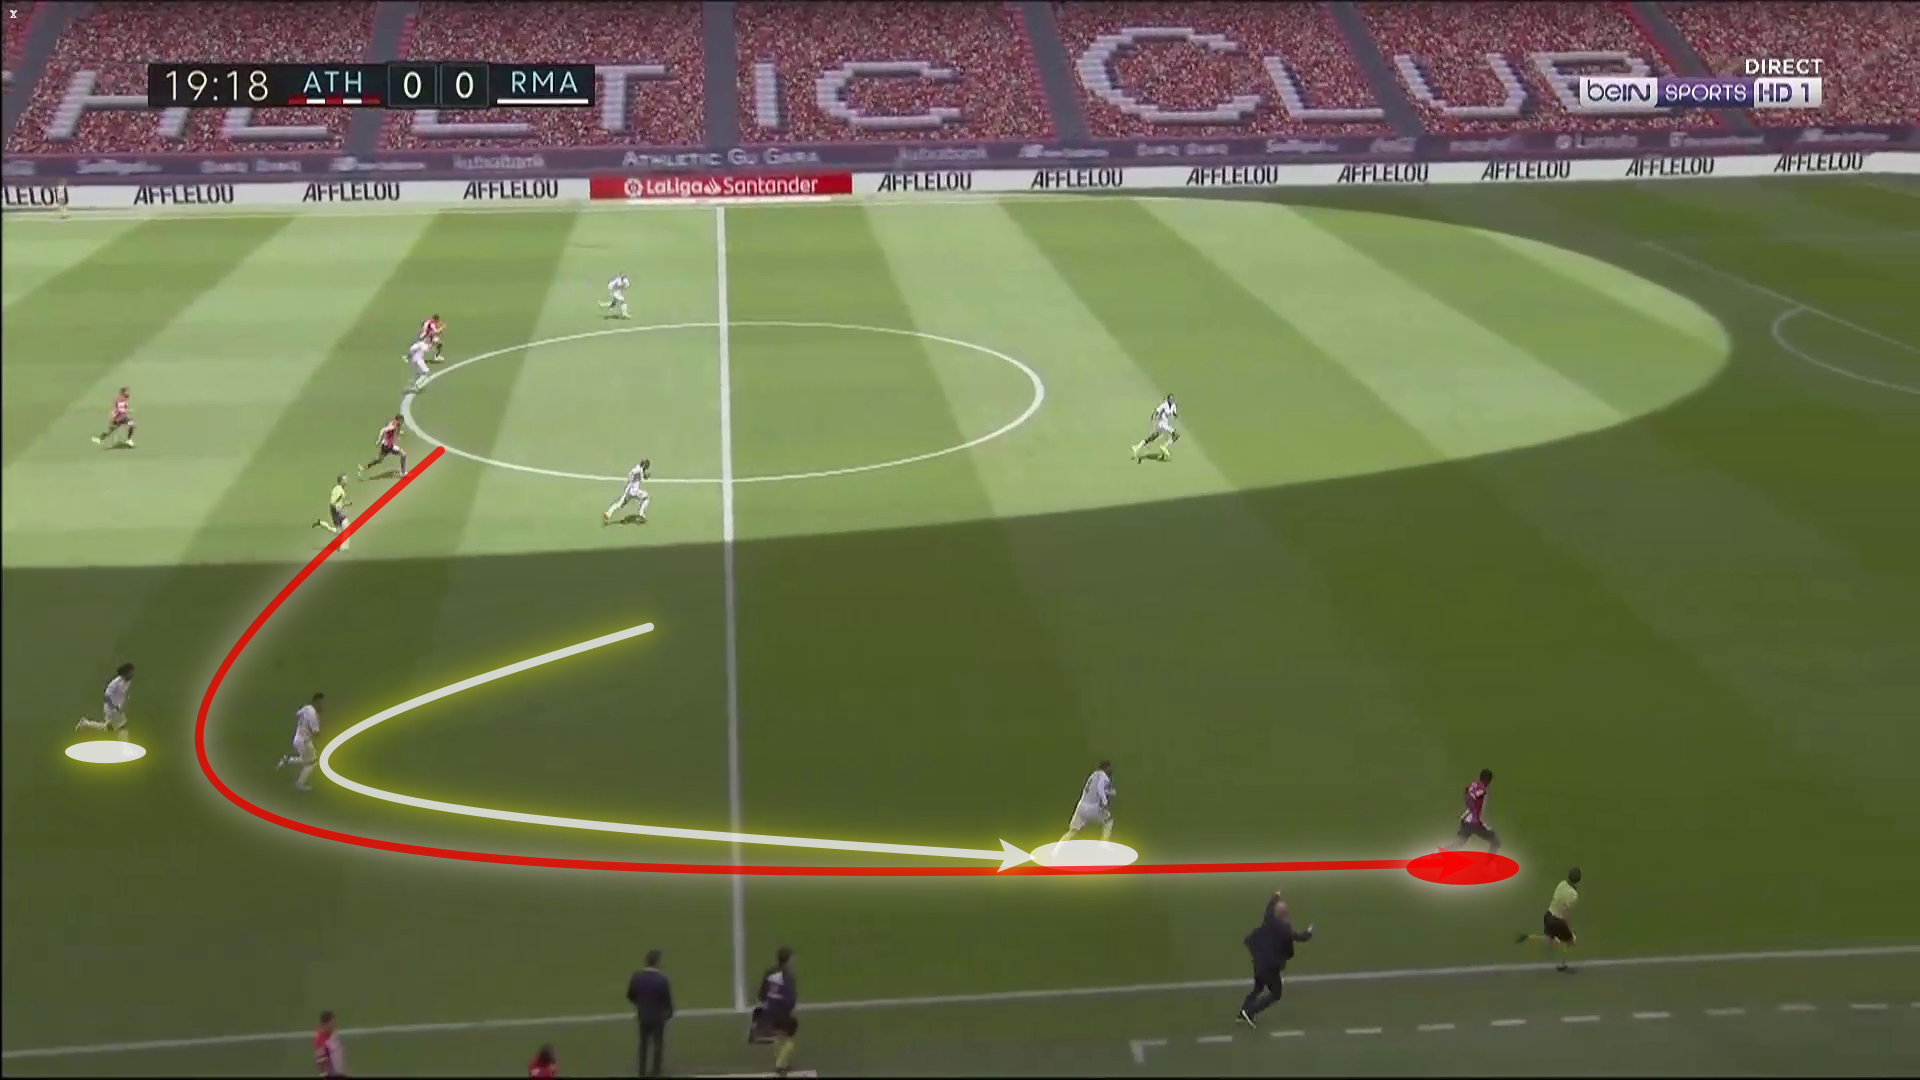 La Liga 2019/20: Athletic Club vs Real Madrid - tactical analysis tactics